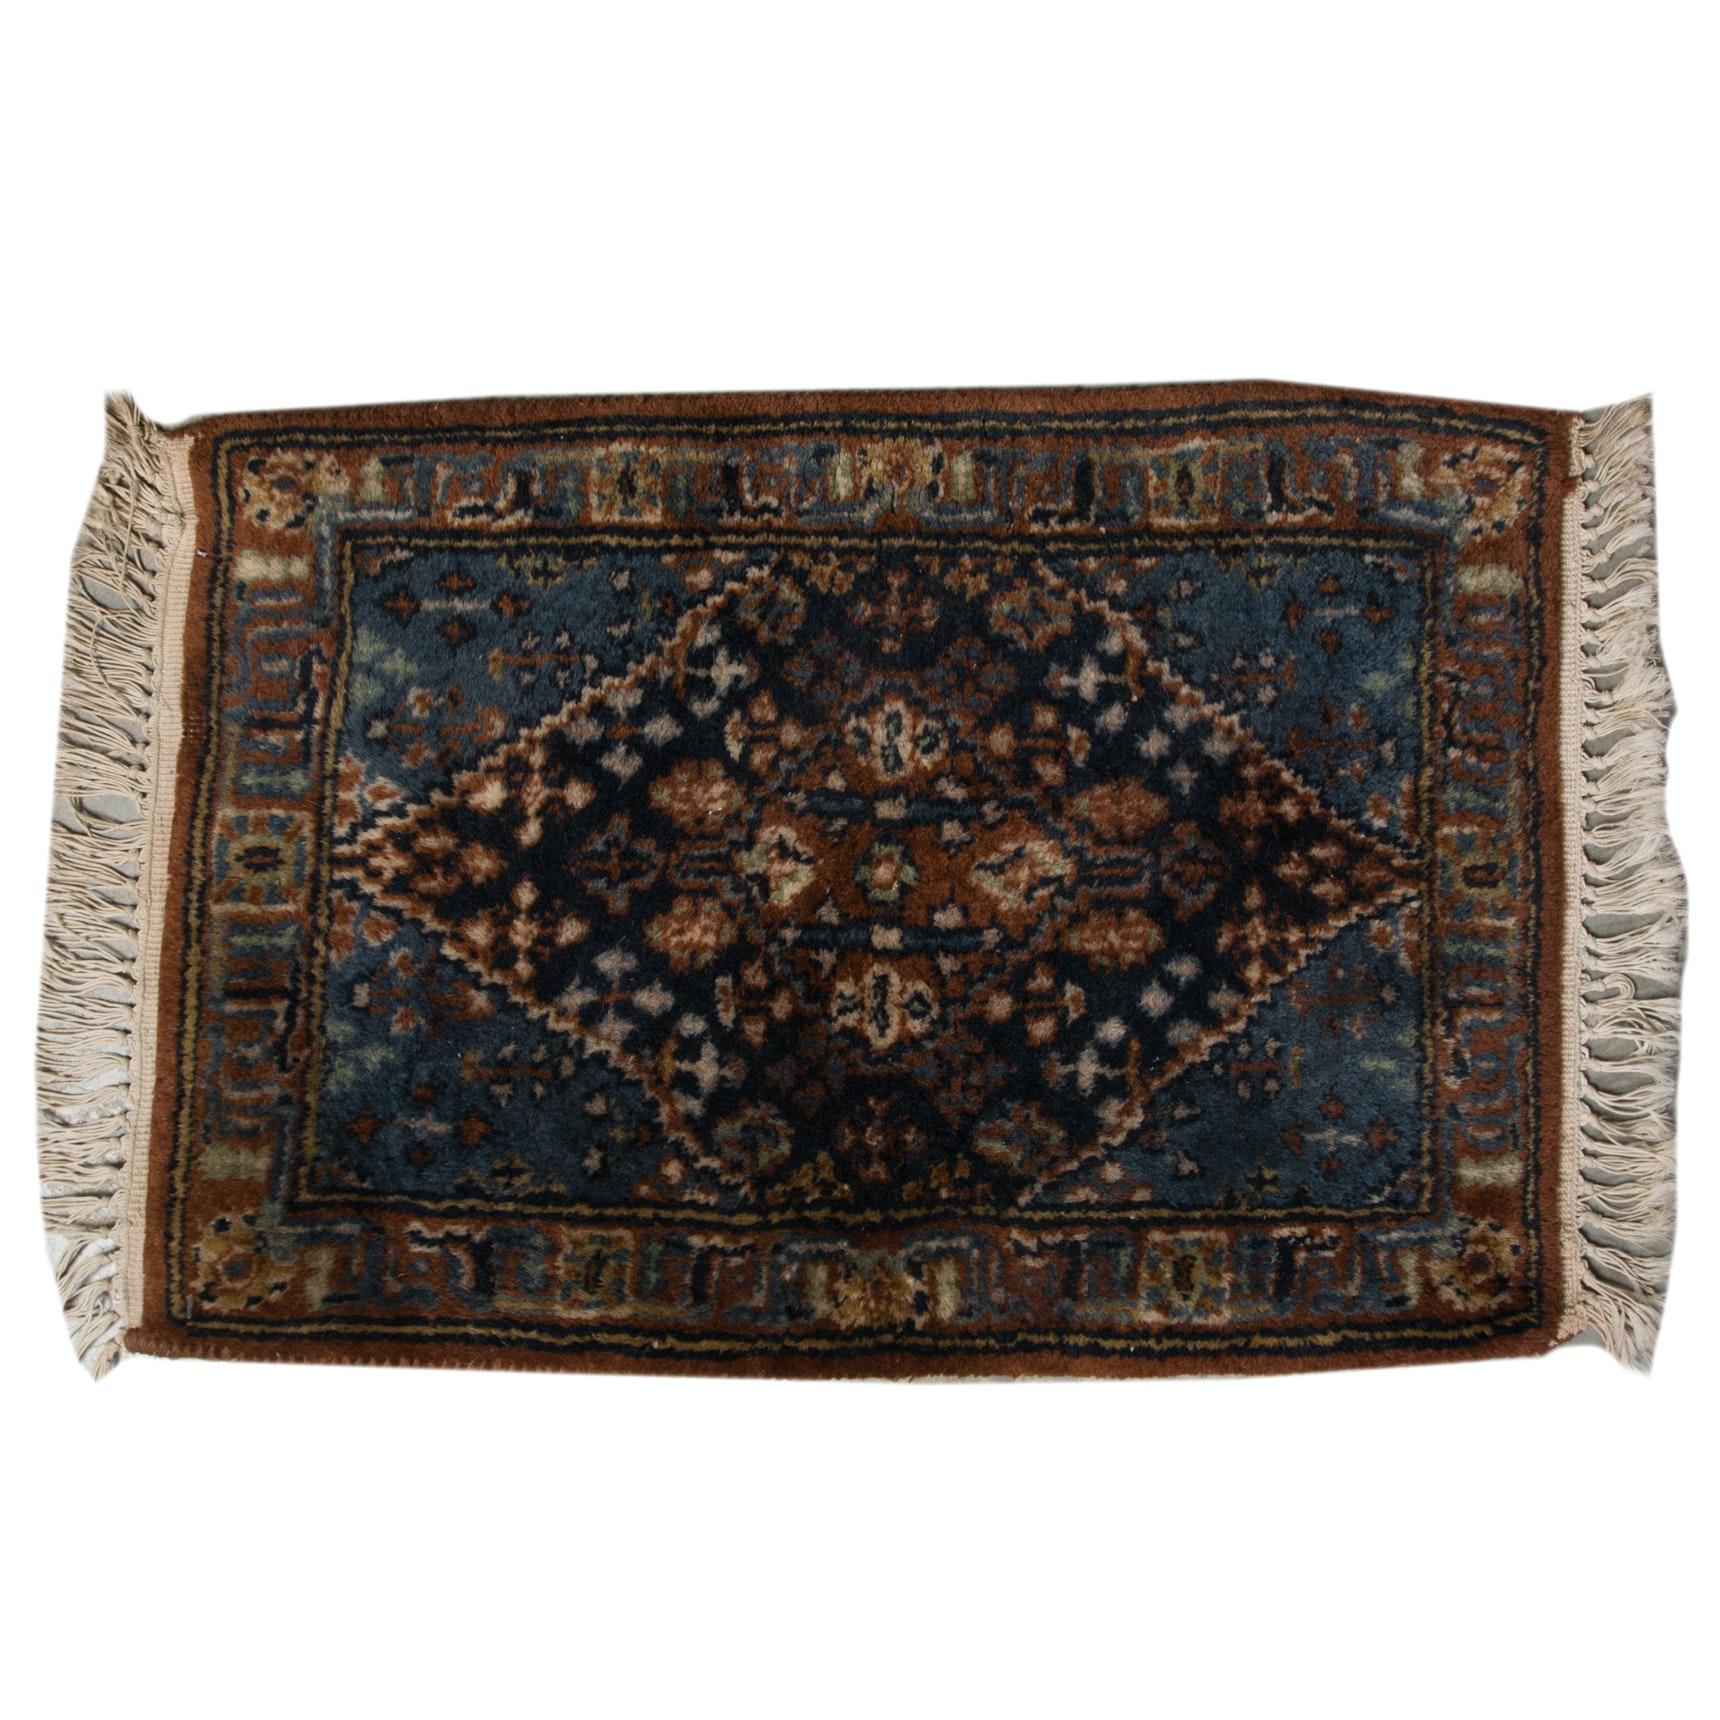 Antique Hand-Knotted Persian Wool Floor Mat